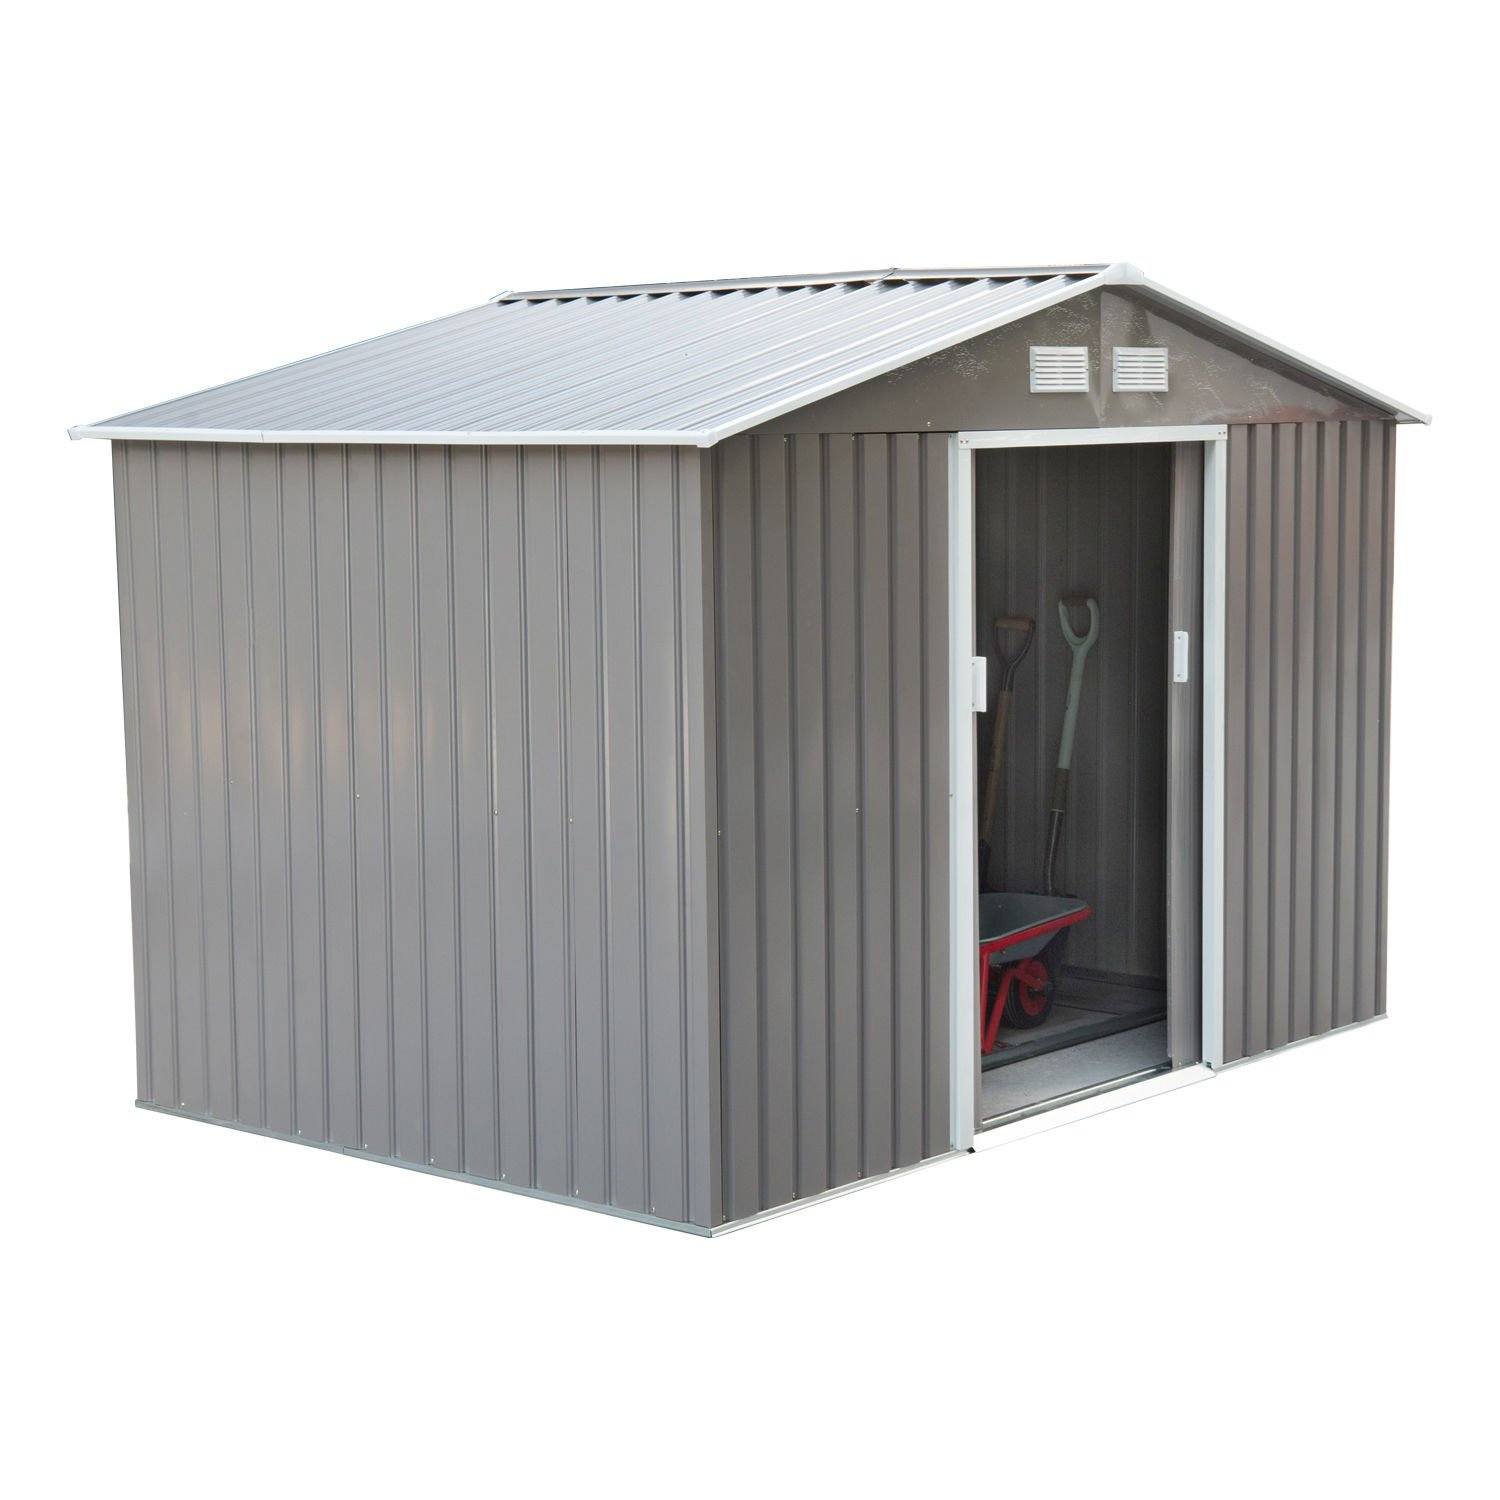 Outsunny 7 x 4 Outdoor Metal Garden Storage Shed with Sloped Roof Gray//White